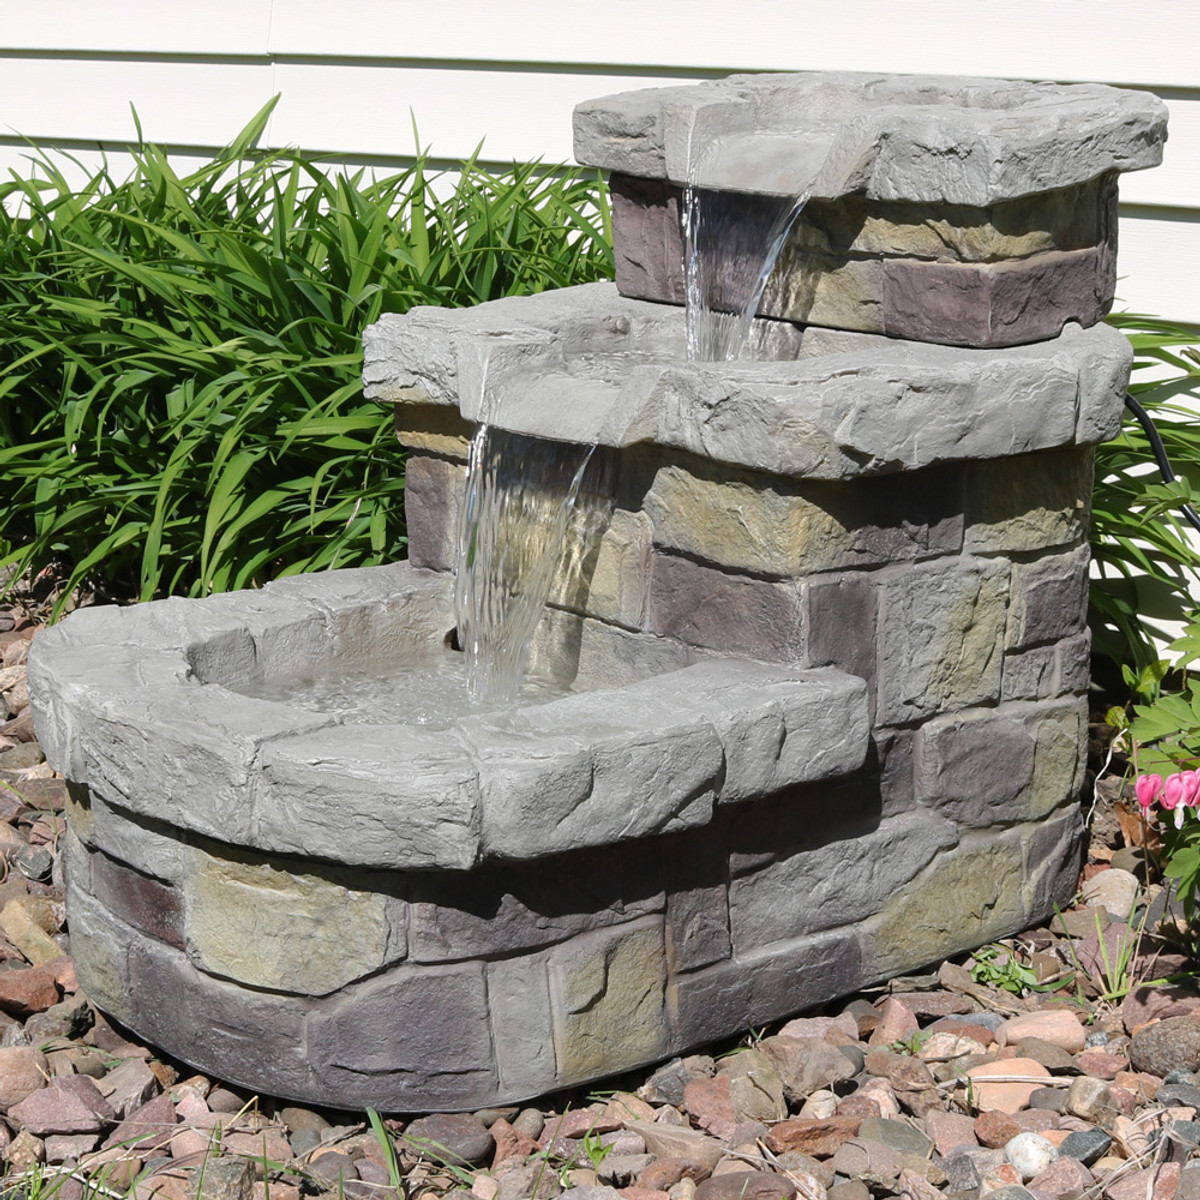 Sunnydaze 3 Tier Brick Steps Outdoor Water Fountain, 21 Inch Tall, Includes  Electric Submersible Pump